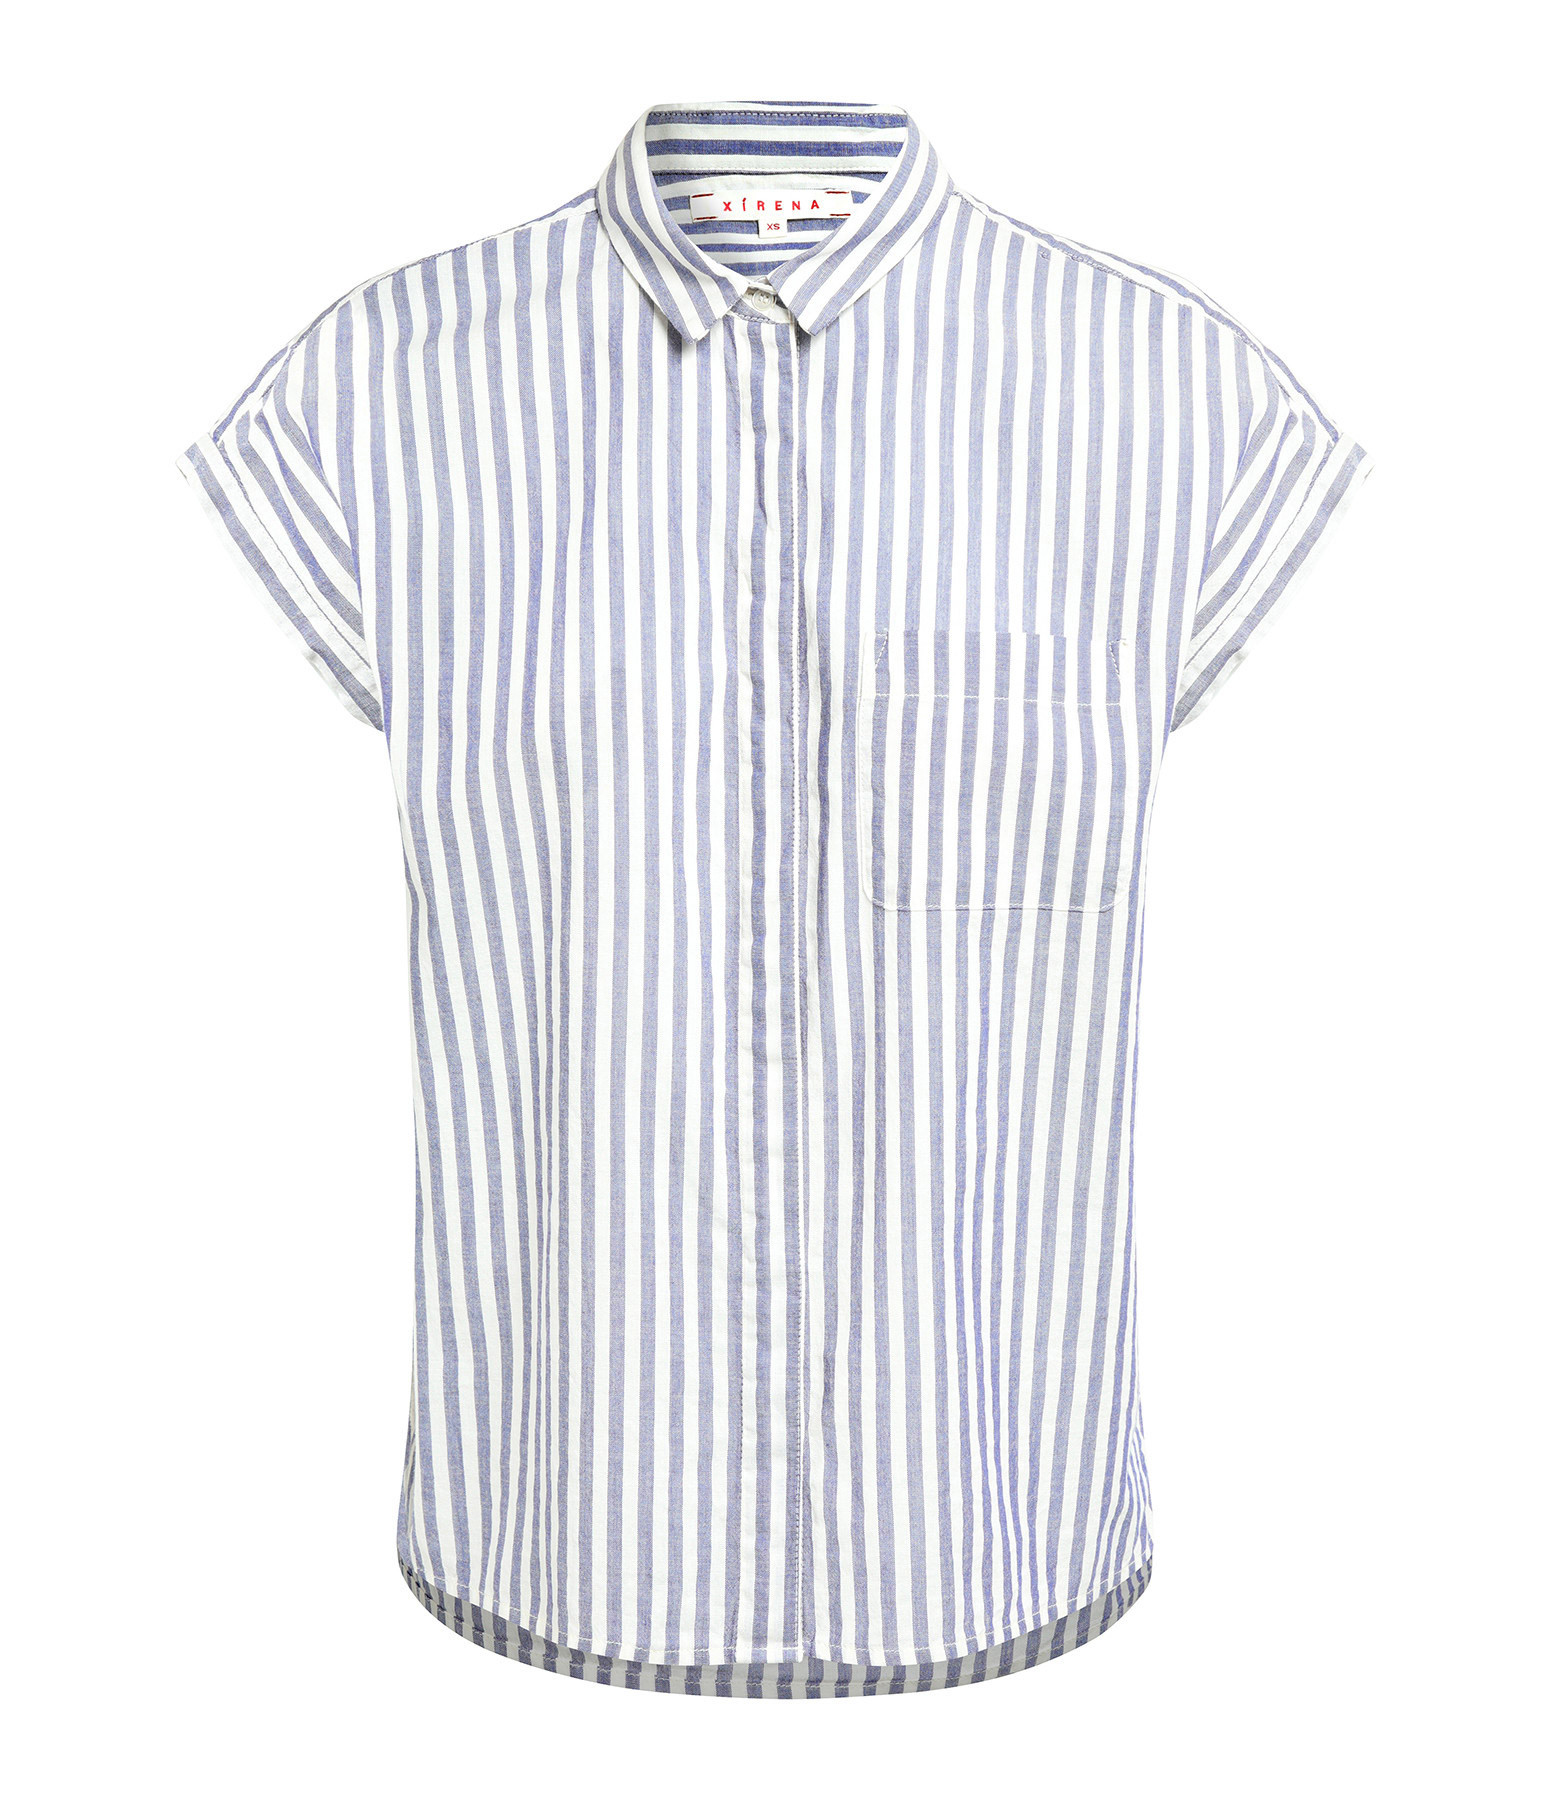 XIRENA - Chemise Wess Coton Rayures Pacific